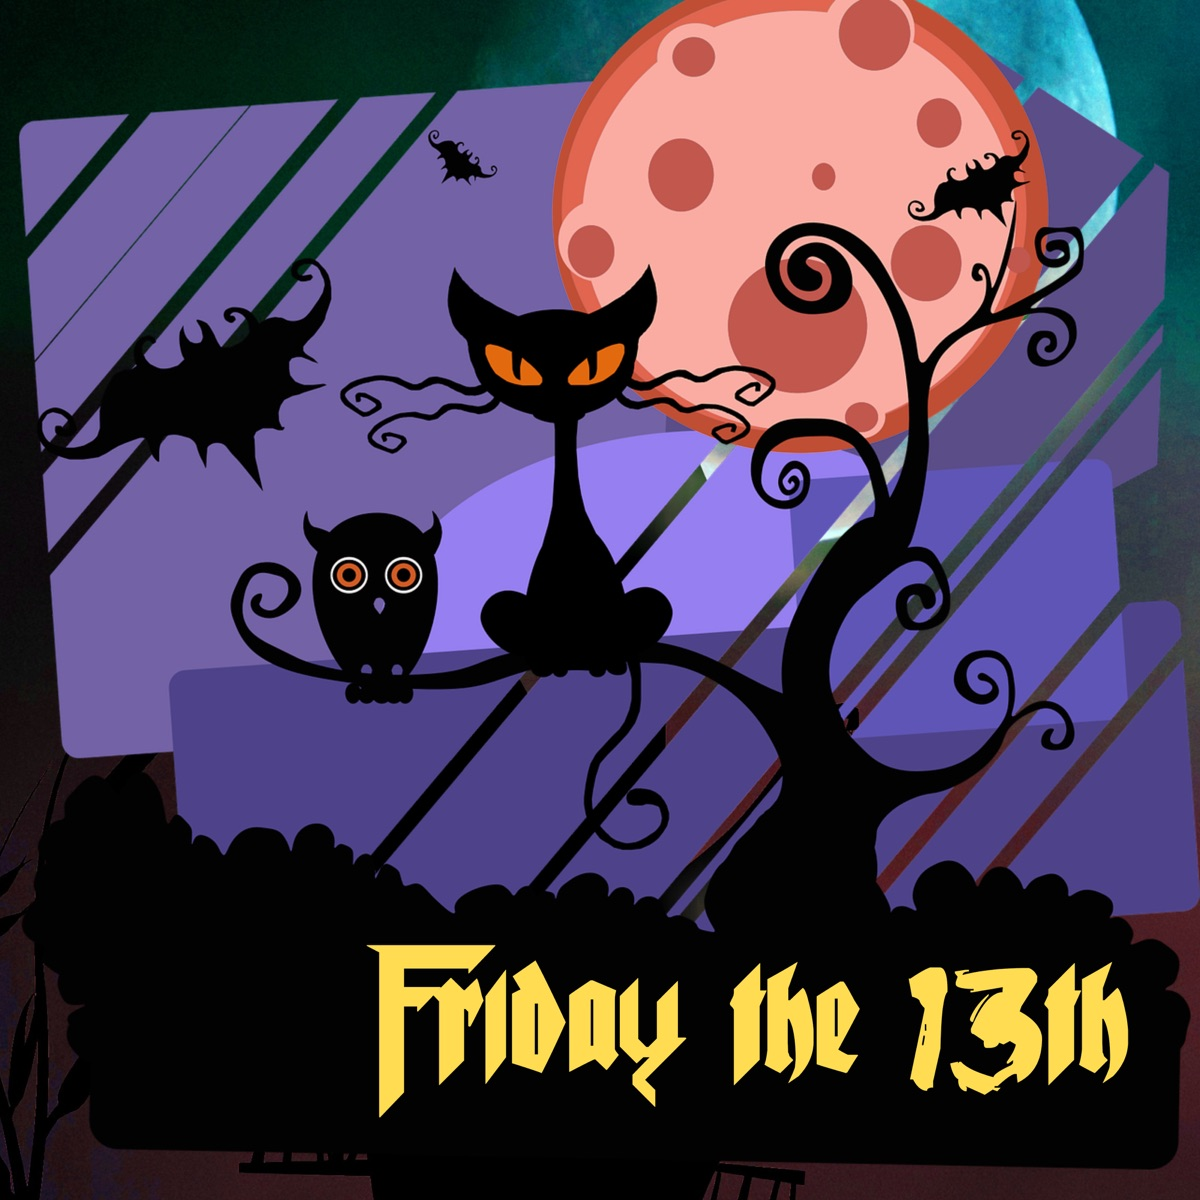 Friday the 13th - Horror Music for Halloween Party, Dark